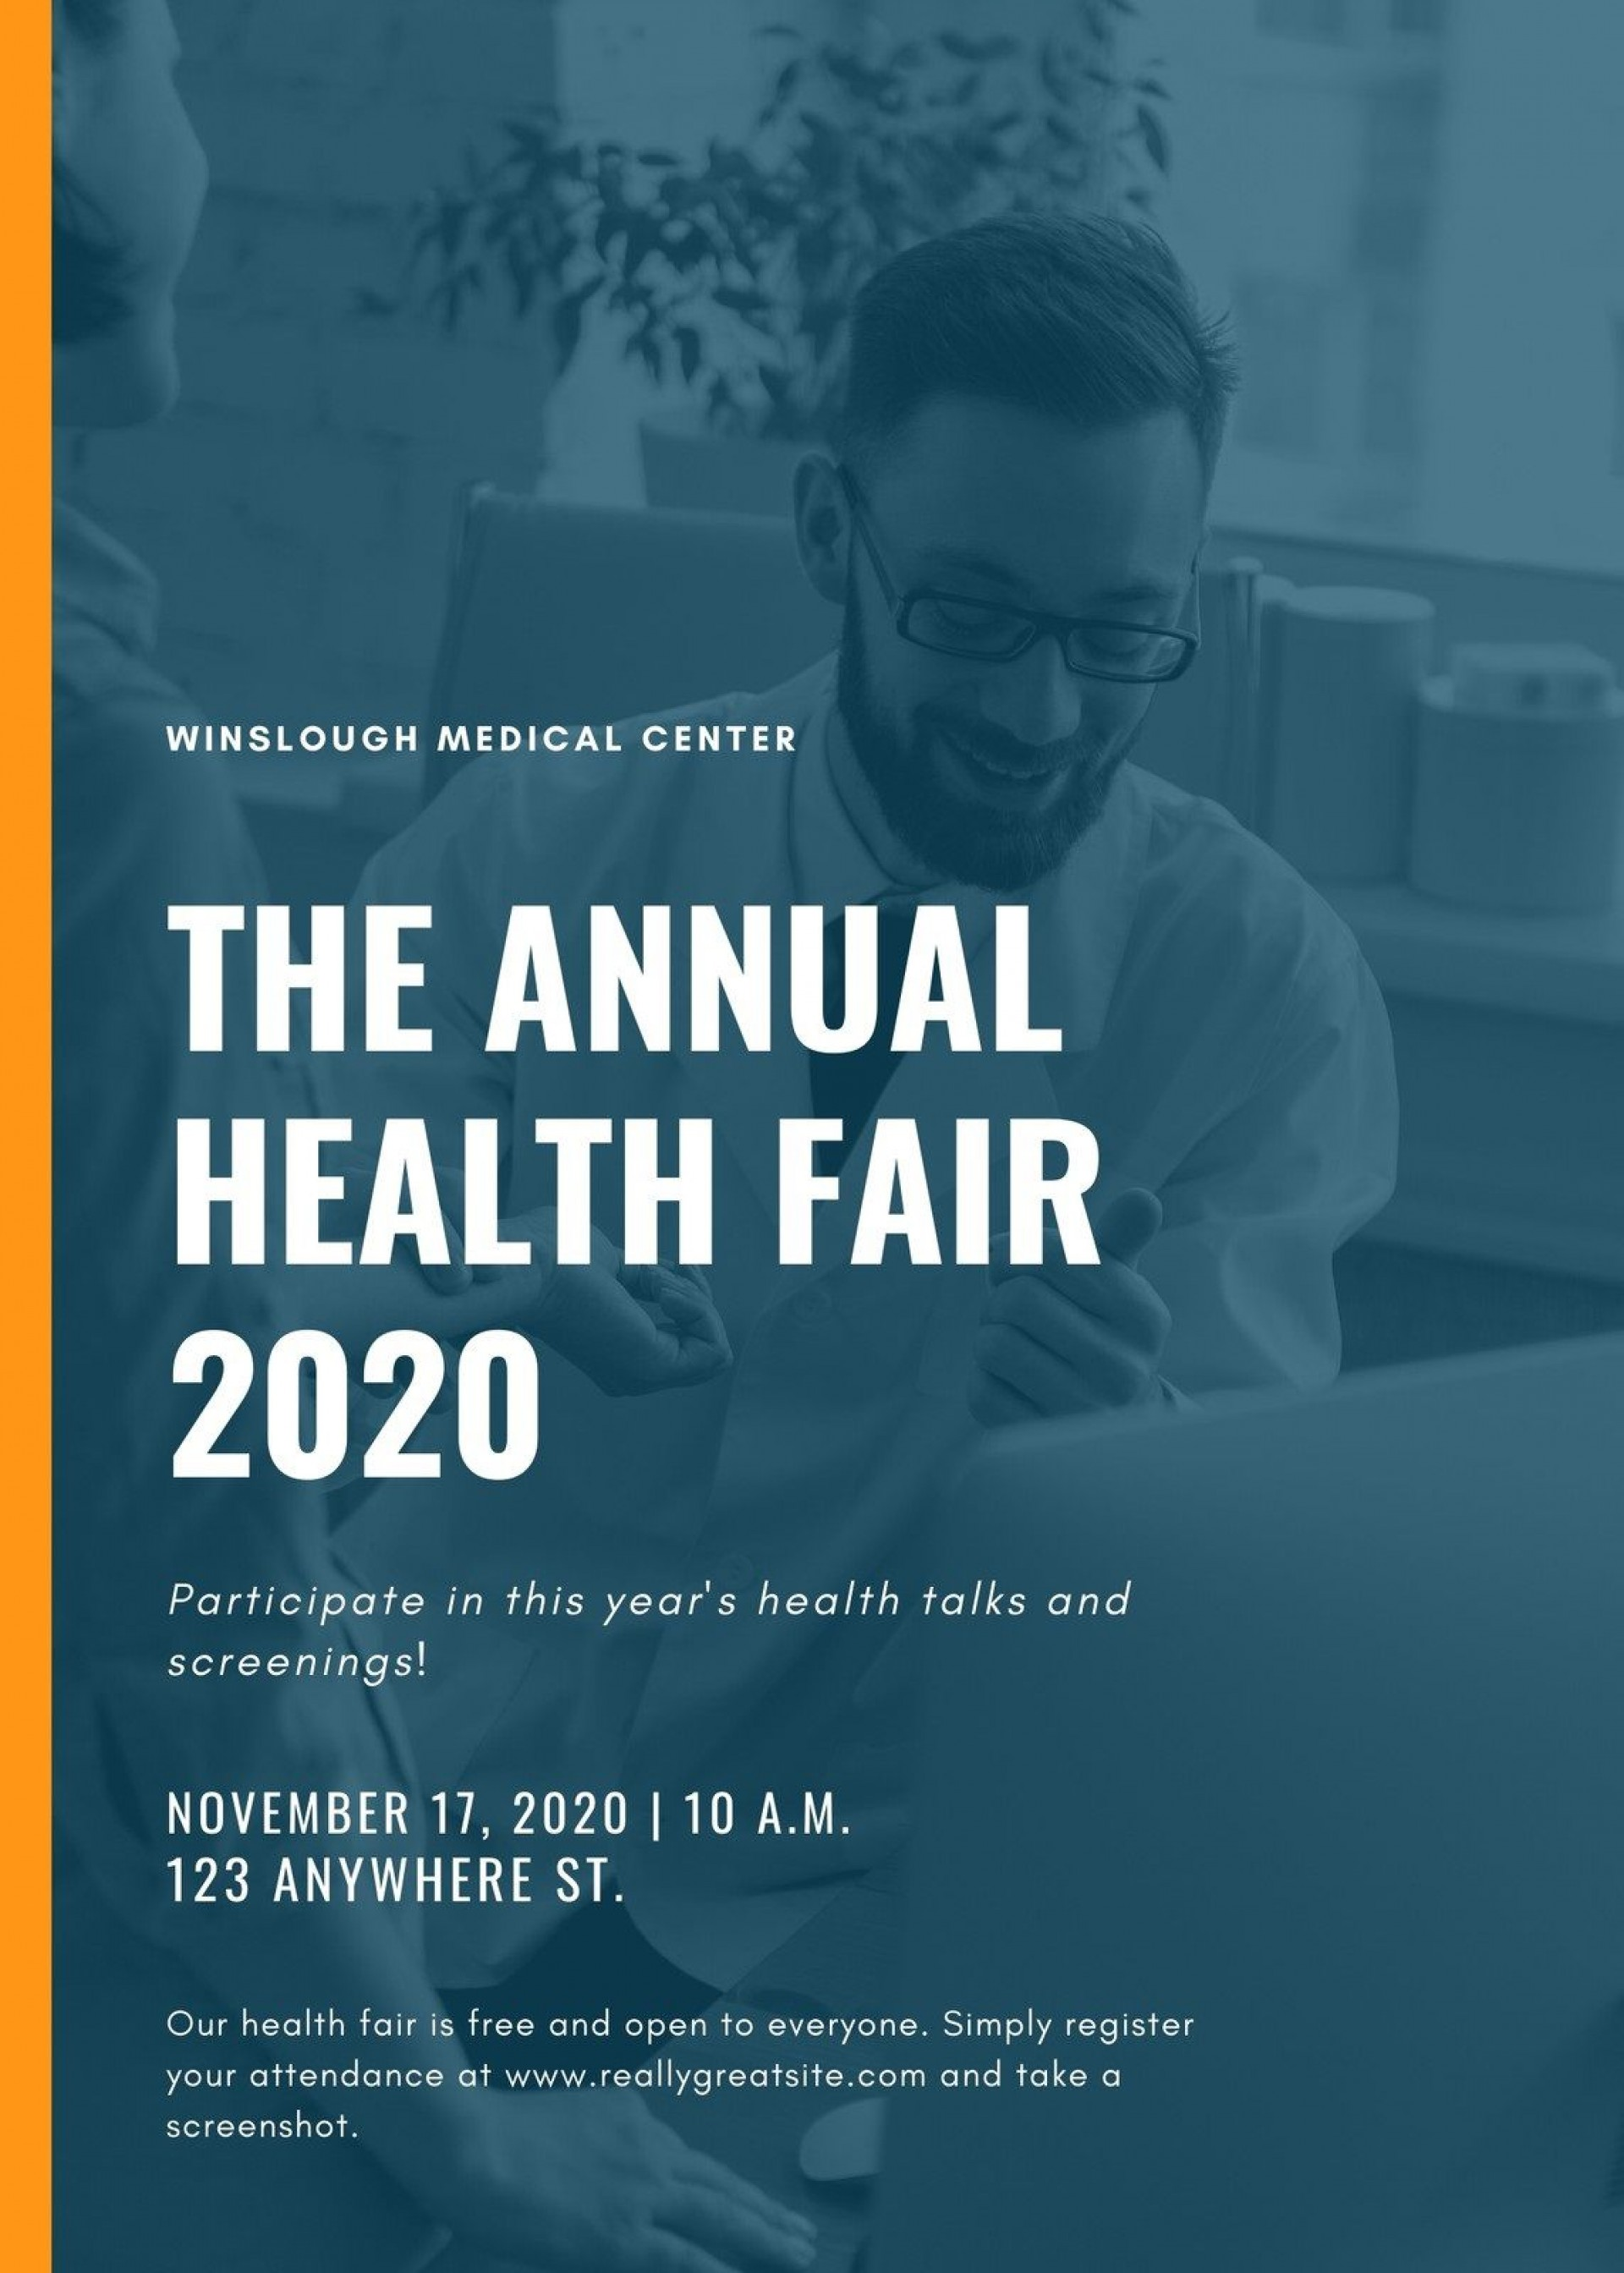 007 Phenomenal Health Fair Flyer Template High Definition  And Wellnes Word1920